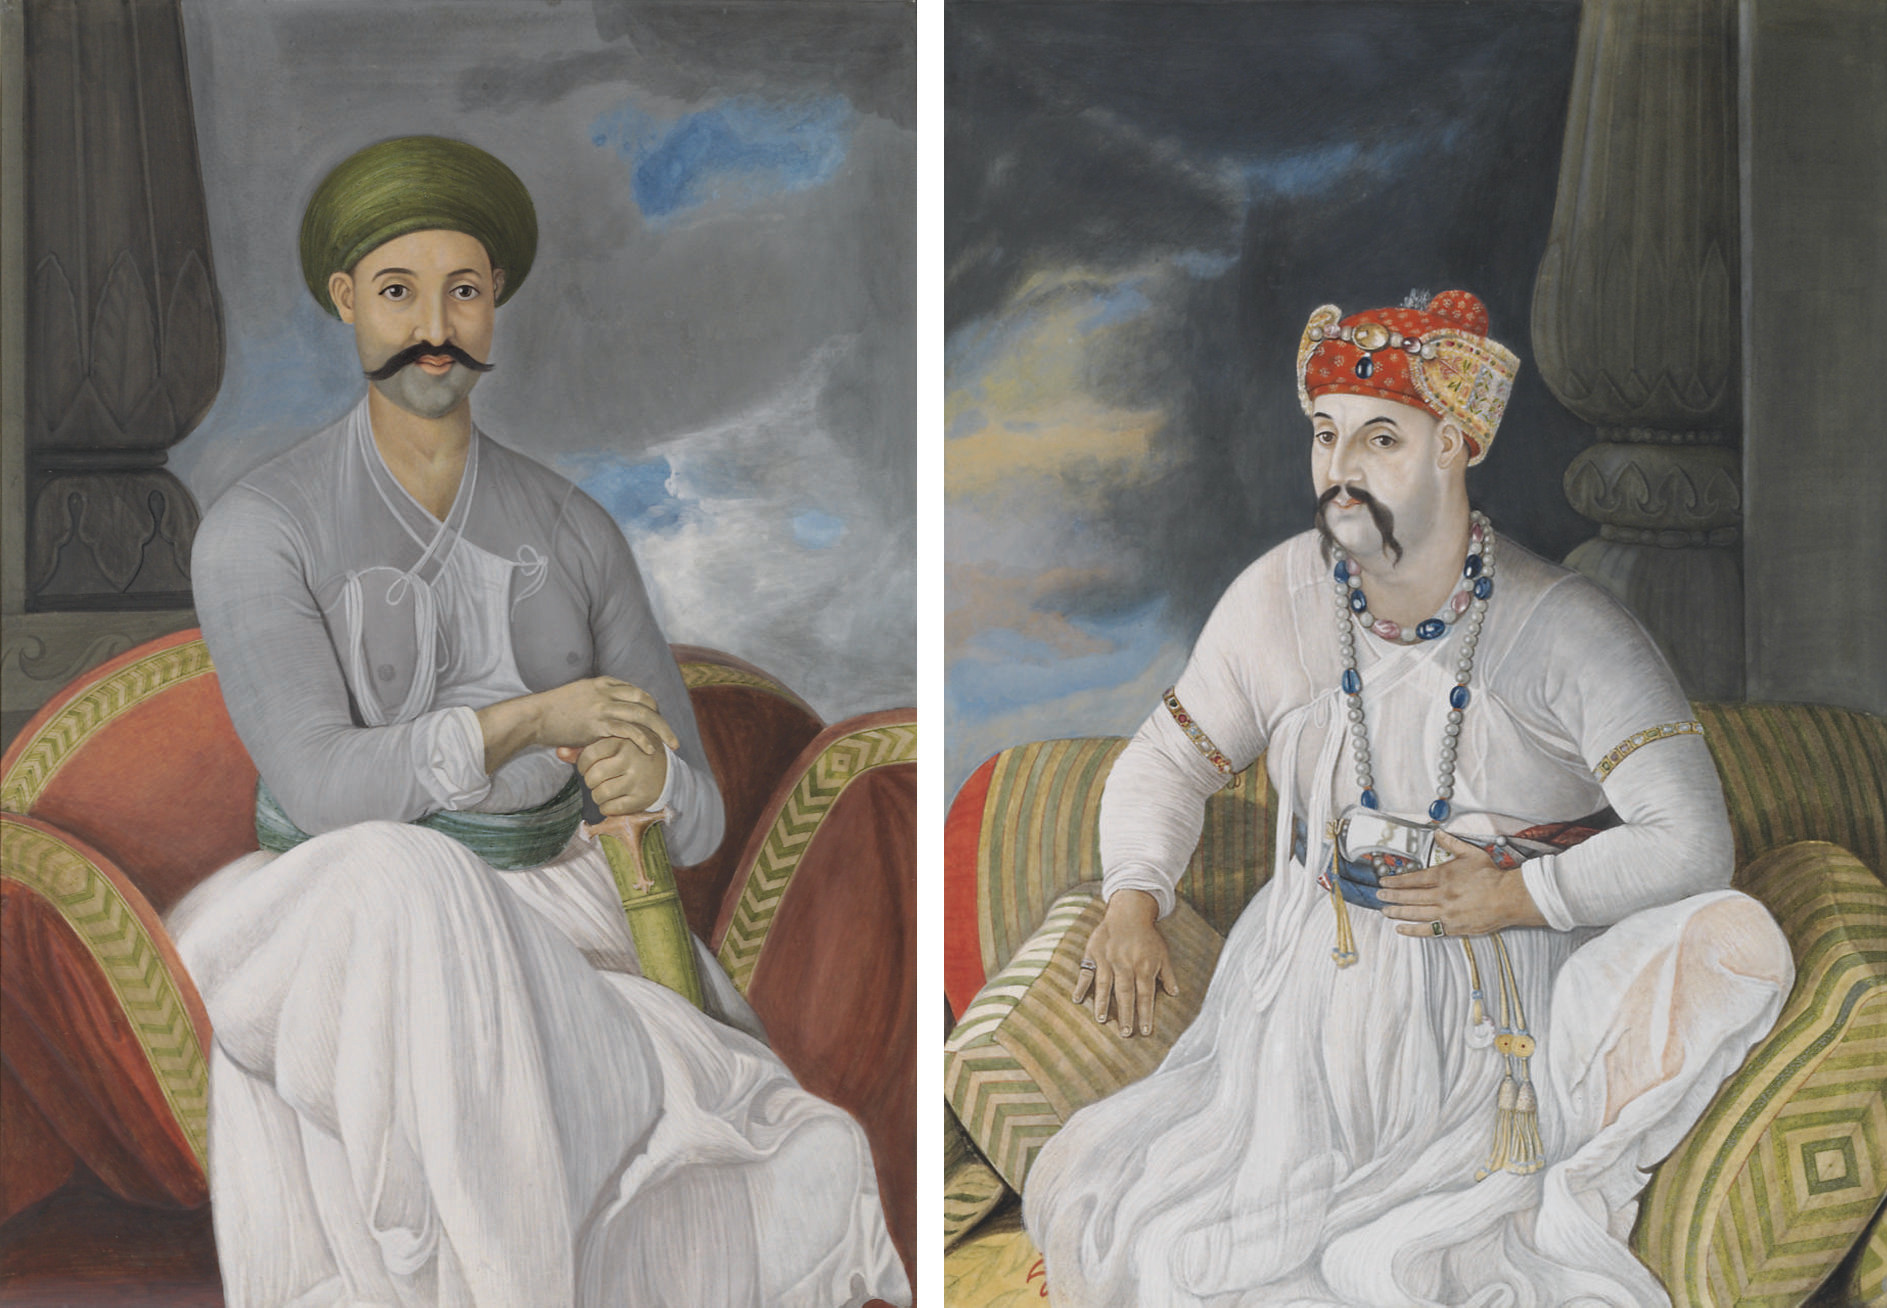 Portrait of The Nabob Vizier Asaf-Ud-Daula, seated, full-length; and Portrait of Prince Mirza Jawan Bakht, heir apparent to the Mughal Emperor Shali Alan, seated, full-length